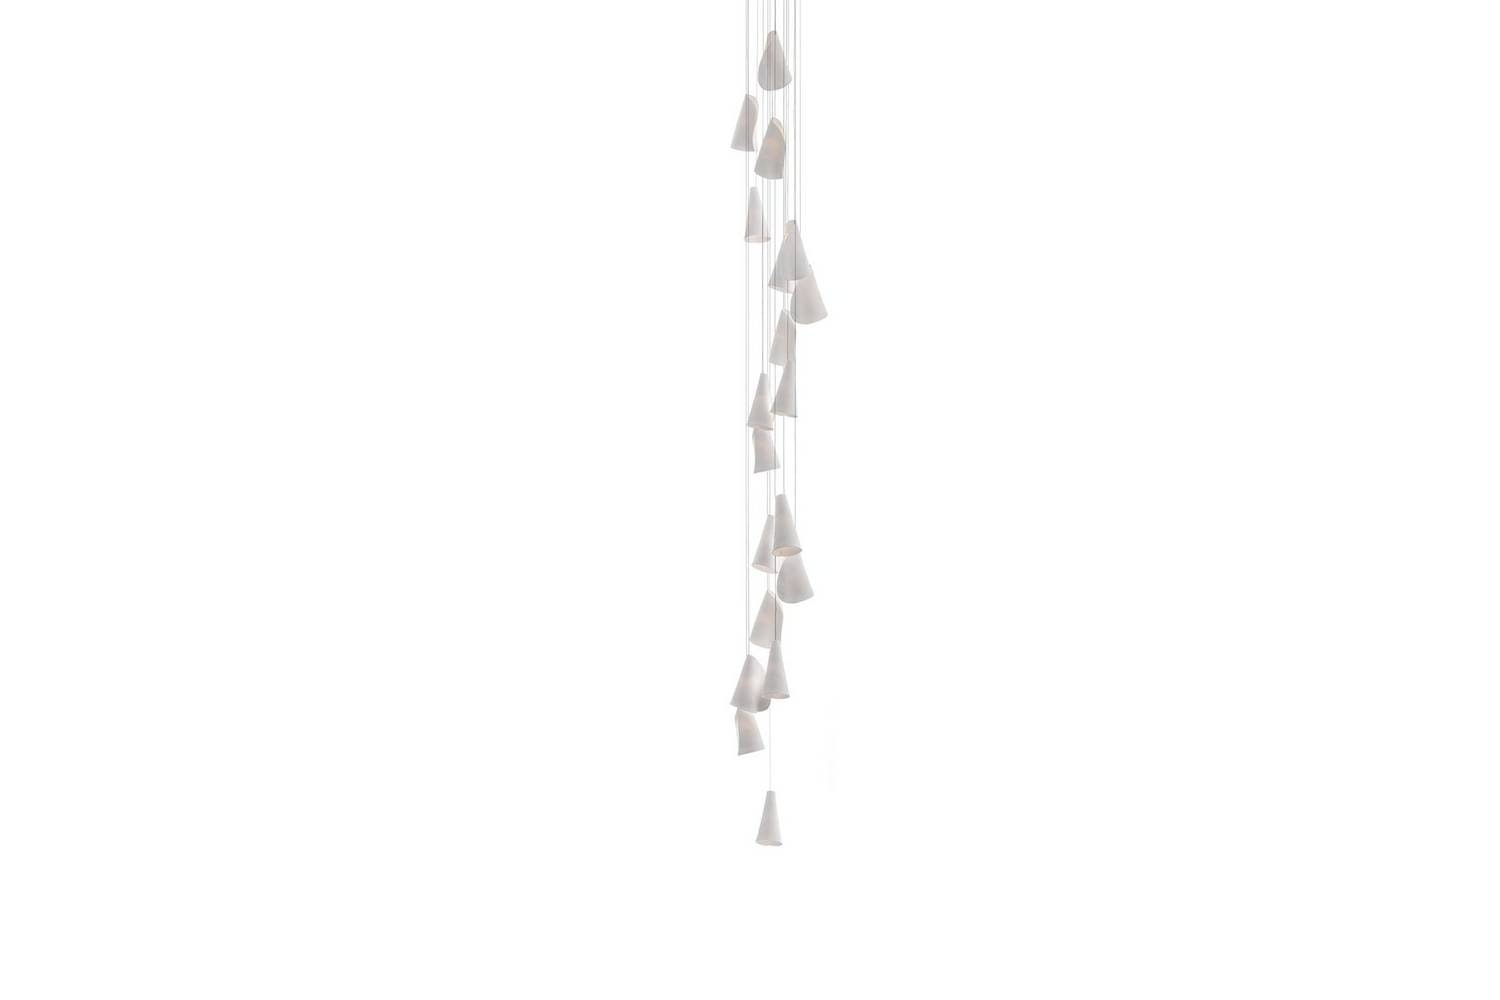 21.19 Columnar Suspension Lamp by Omer Arbel for Bocci